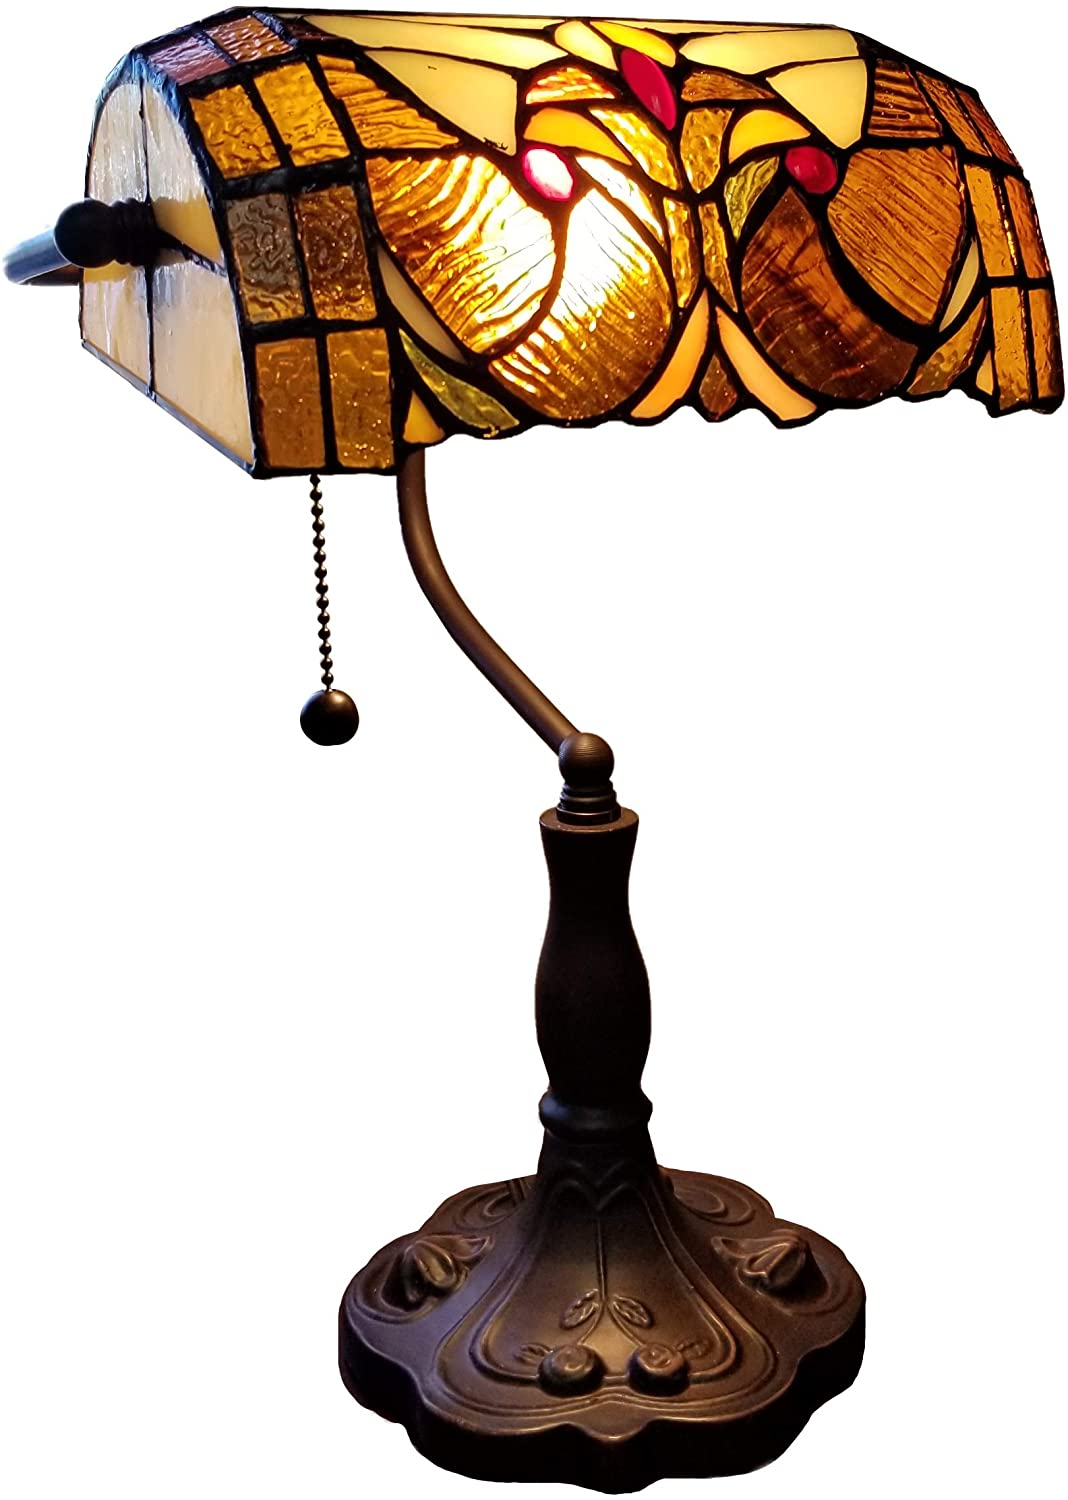 Tiffany antique table lamps for office and residential use